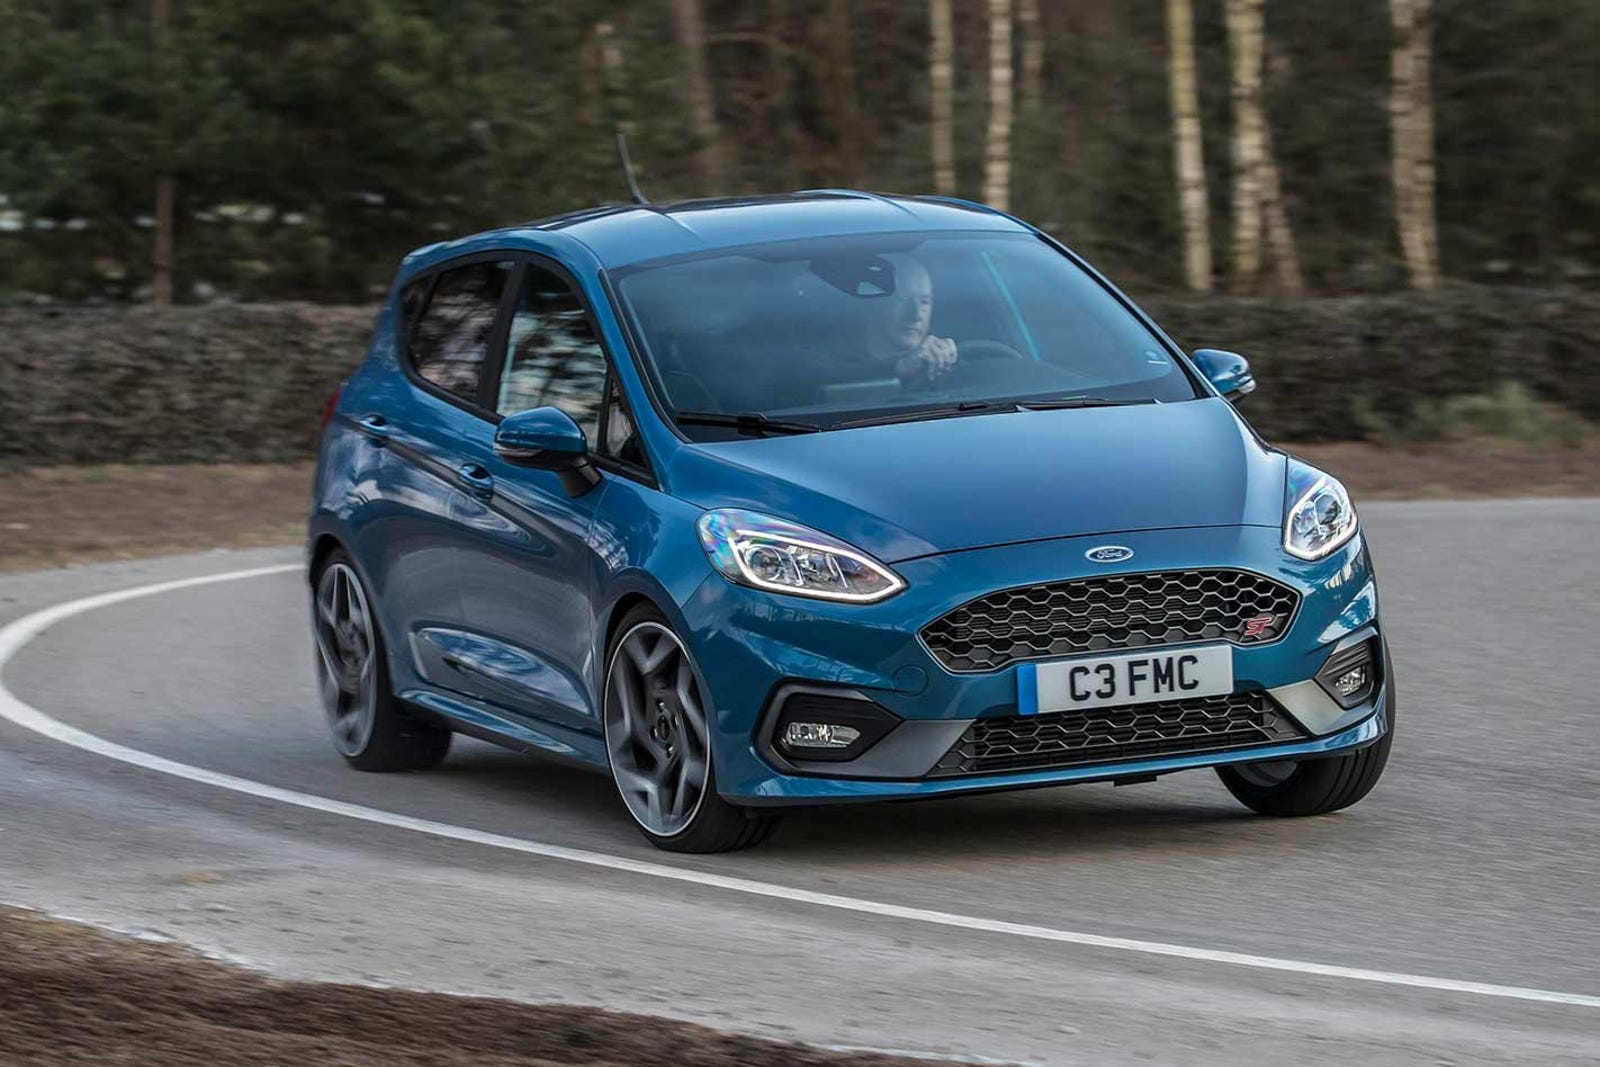 The Fiesta ST is an obvious choice, it's a small, powerful, nimble vehicle that can teach us a lot about car dynamics in a small package, and truly reflects how wide ranging and internationalized Ford can be.